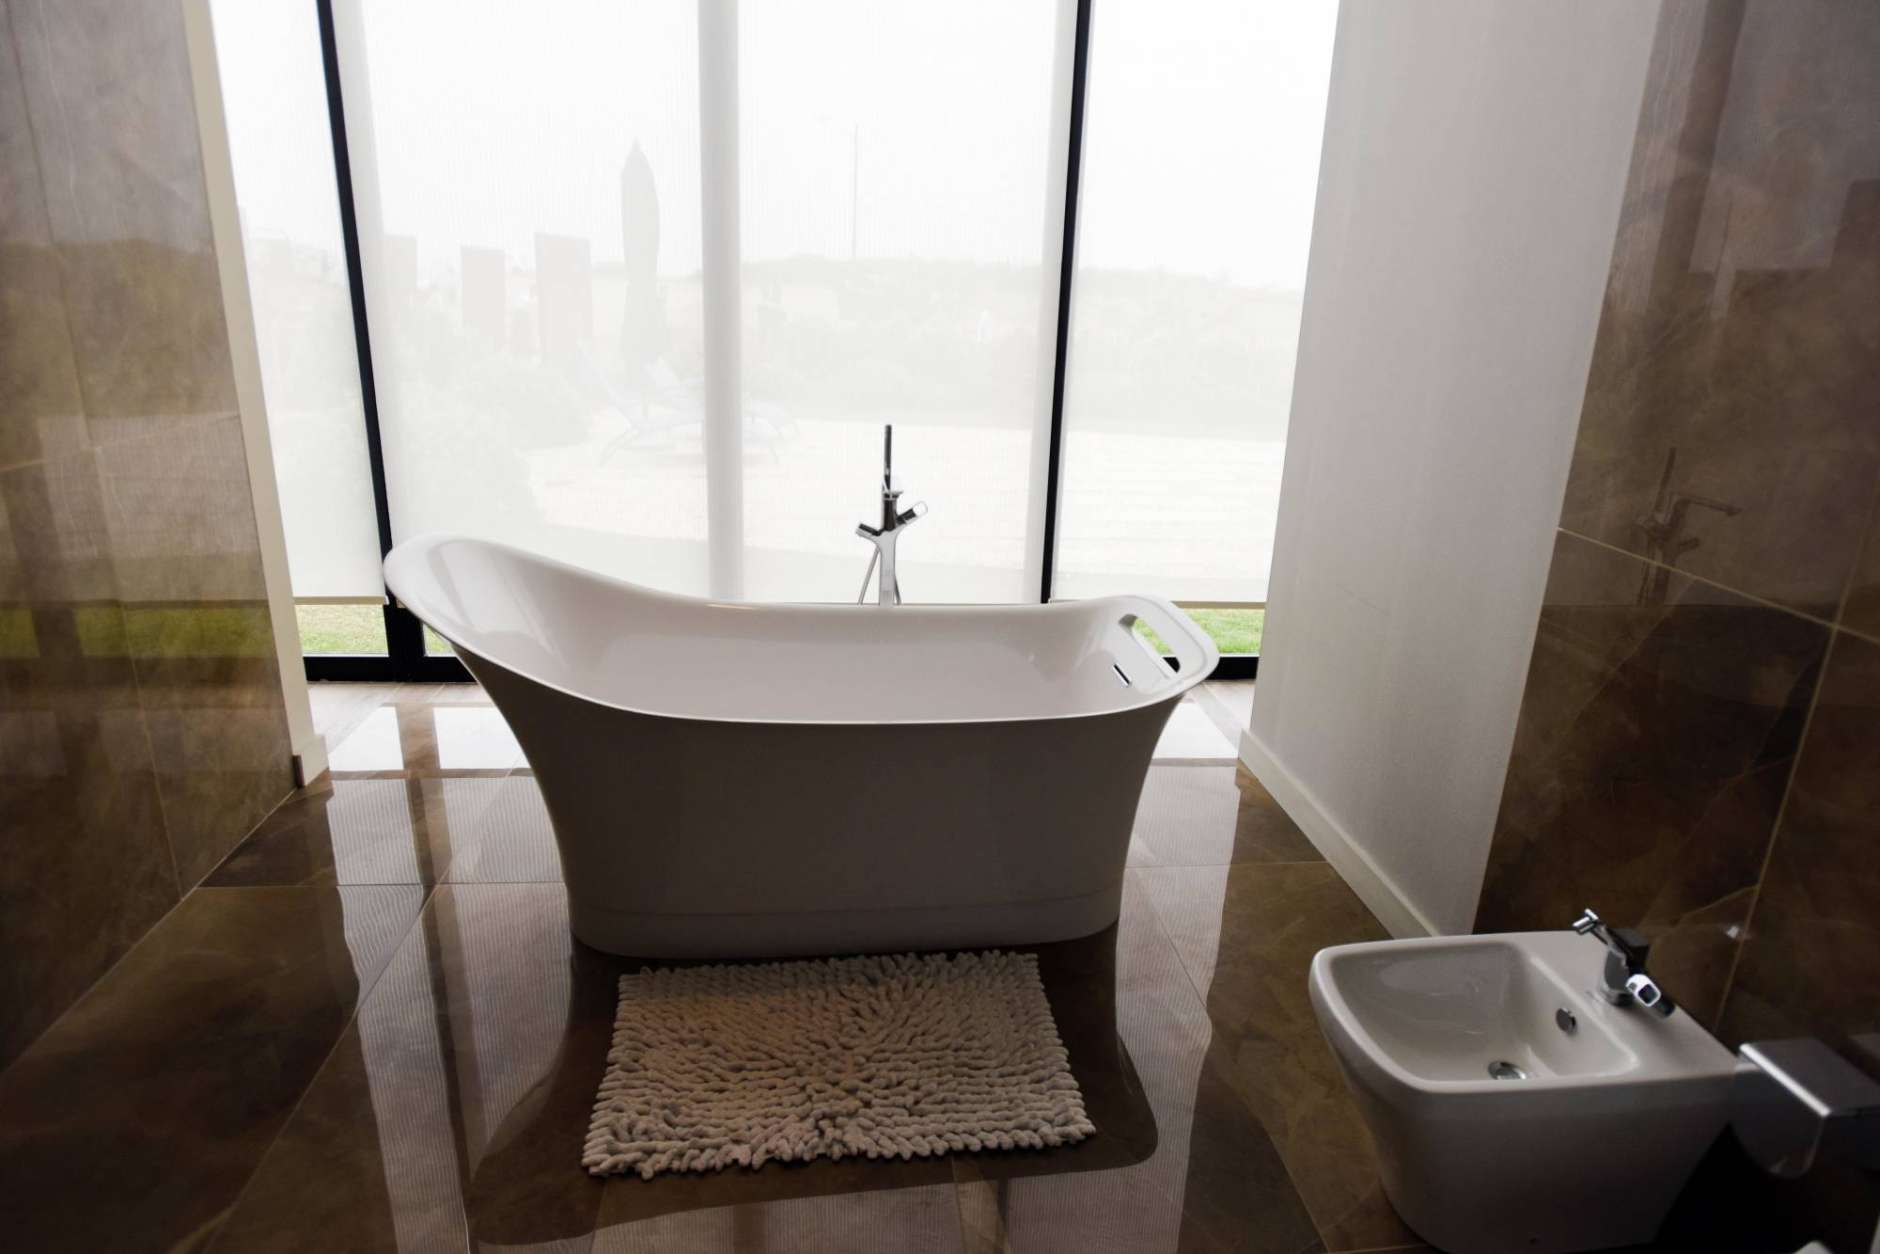 This Jan. 17, 2017 photo shows the showroom bathroom at Trump Tower being built in Punta del Este, Uruguay. The tower will have two indoor heated pools, spa, sauna, Scottish shower, massage room, private theater, private wine cellar and the building's own market. Covered regulation tennis courts will include spectator seating and intelligent climate control. (AP Photo/Matilde Campodonico)